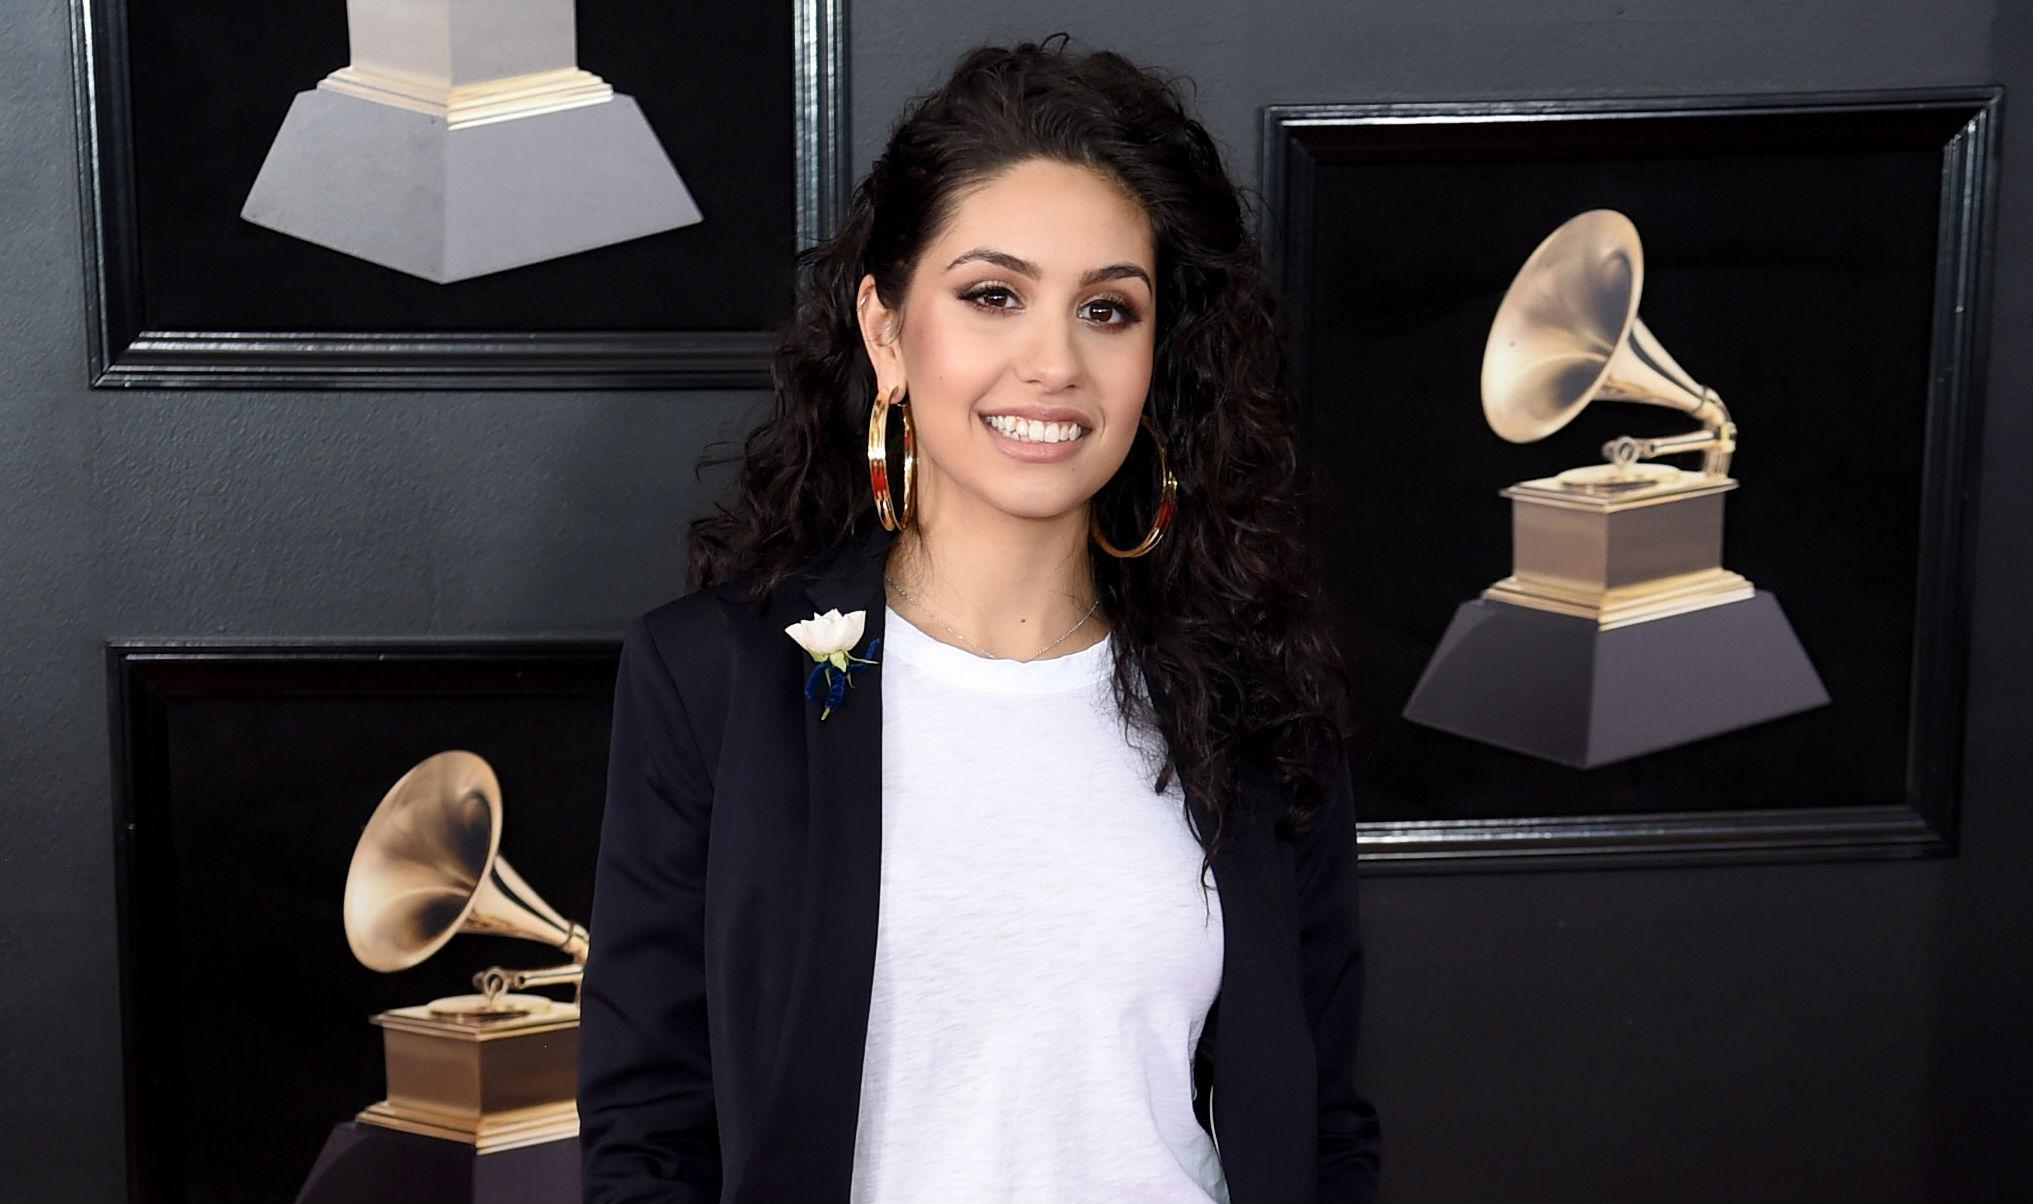 Alessia Cara Fights Back Against Outrage Over Her 2018 Grammy Win